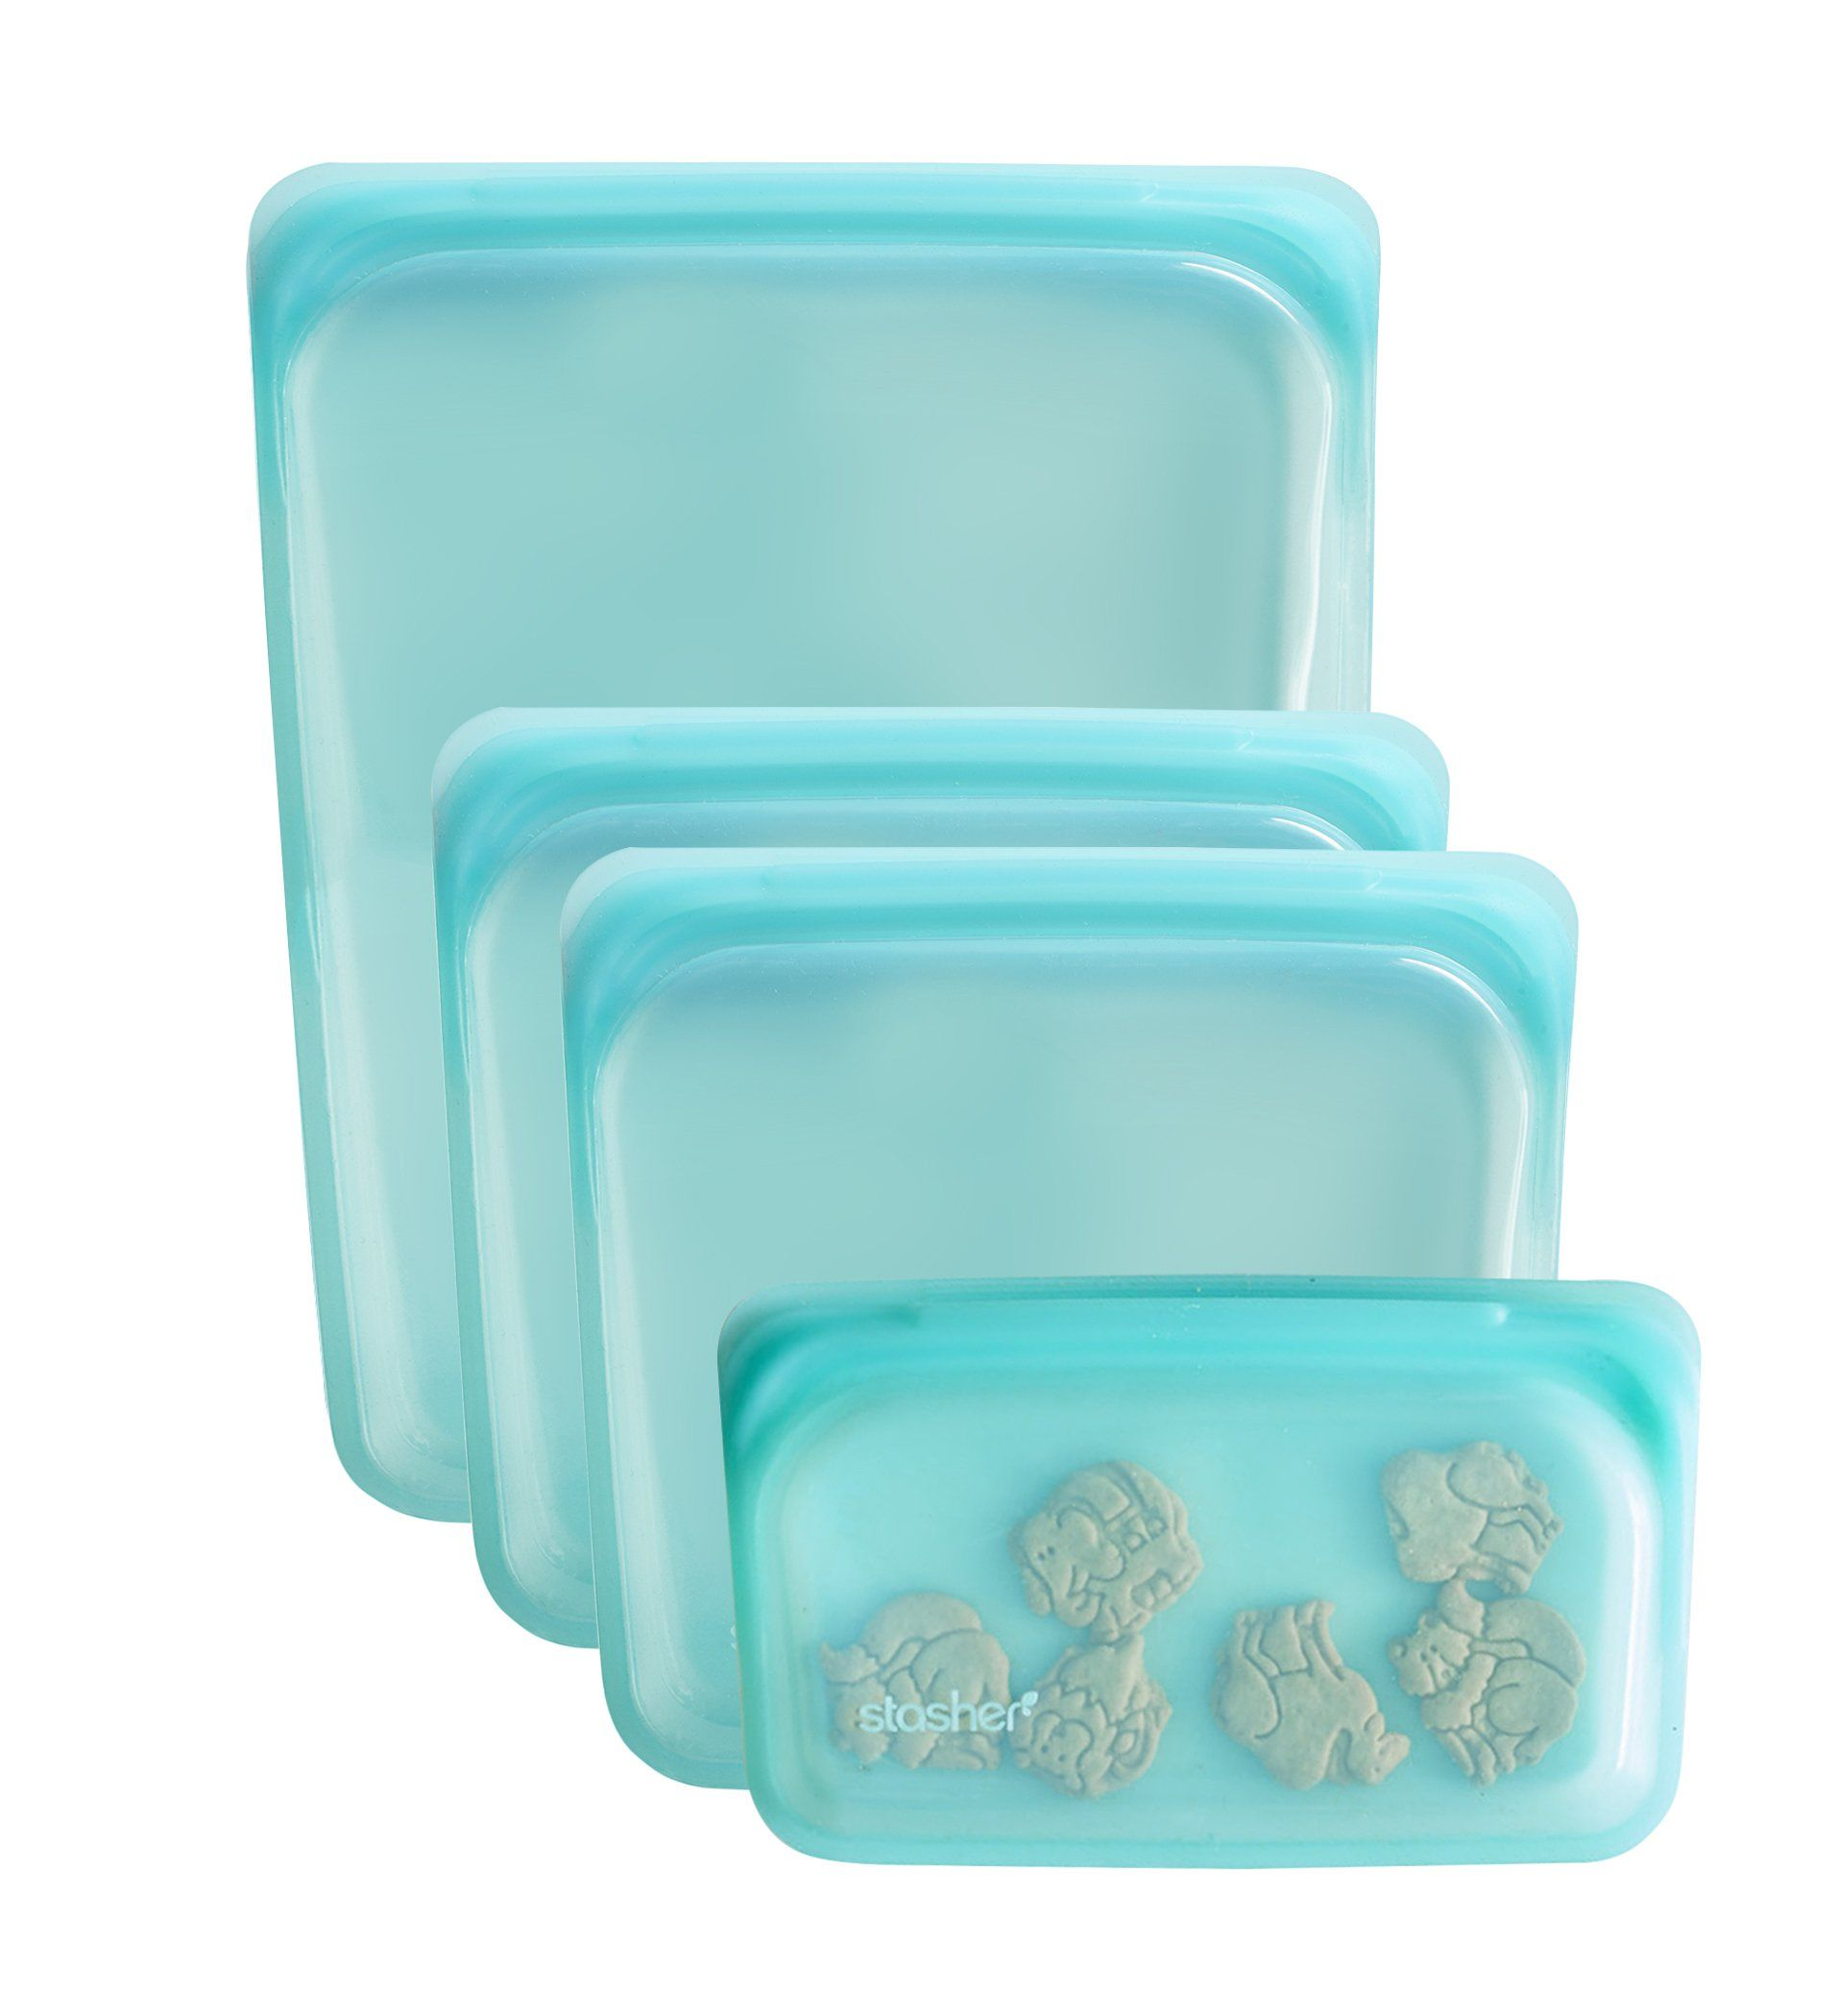 Reusable Silicone Bag Multi Pack In 2020 Plastic Free Kitchen Plastic Free Cheap Dinnerware Sets